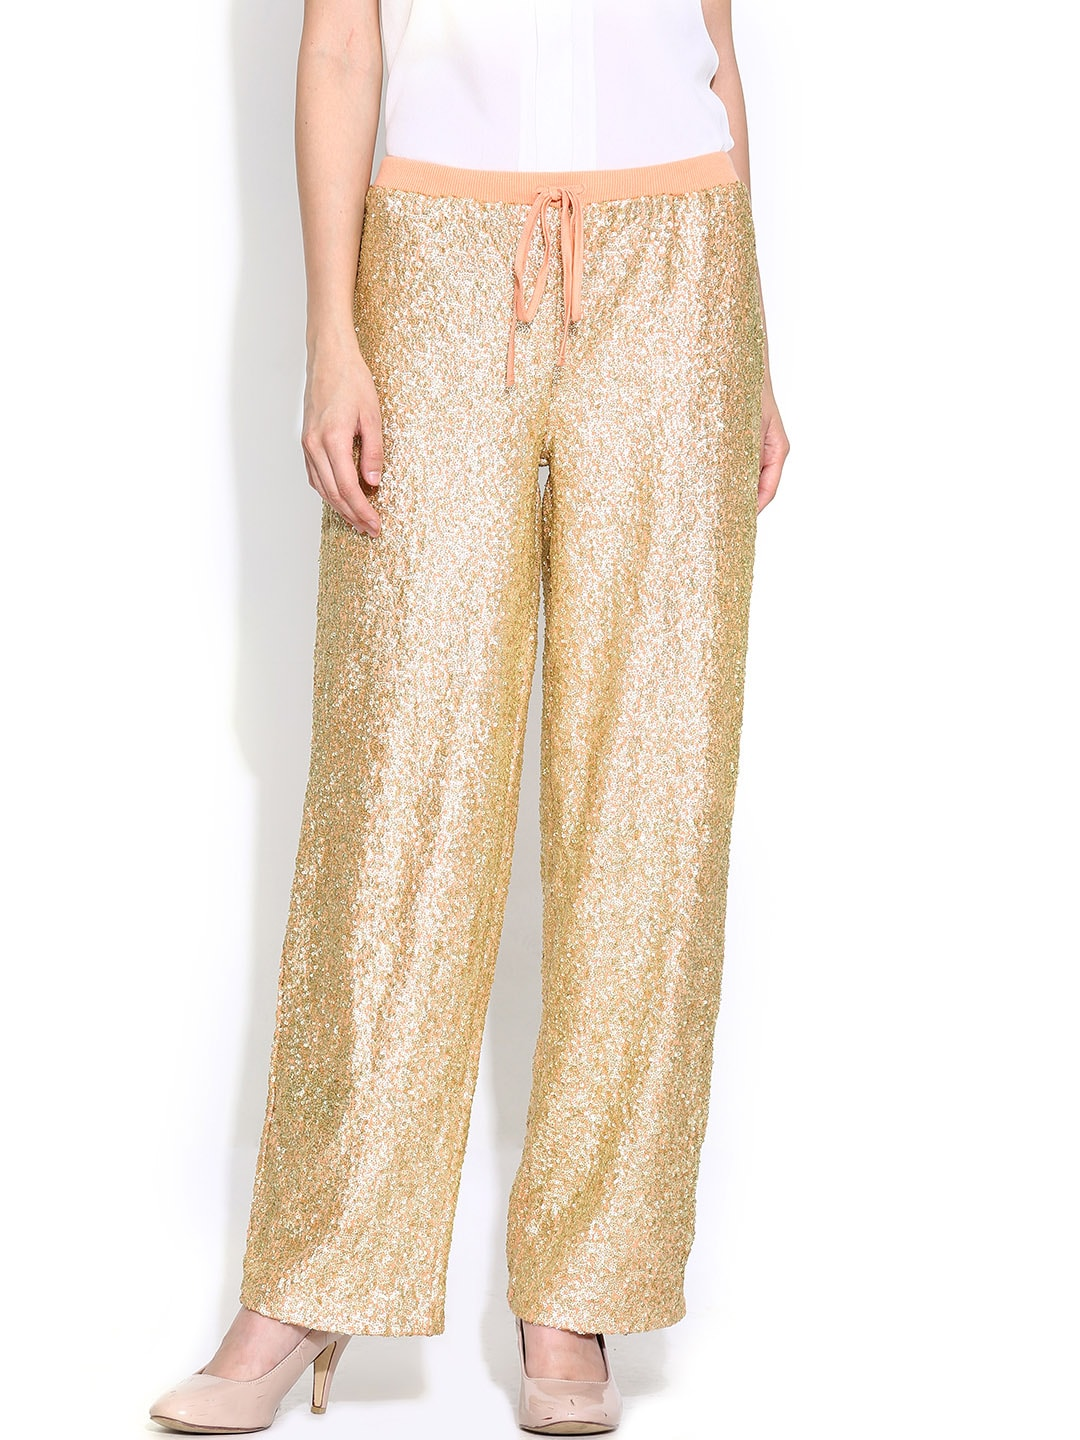 Vero Moda by Karan Johar Golden Sequinned Palazzo Trousers